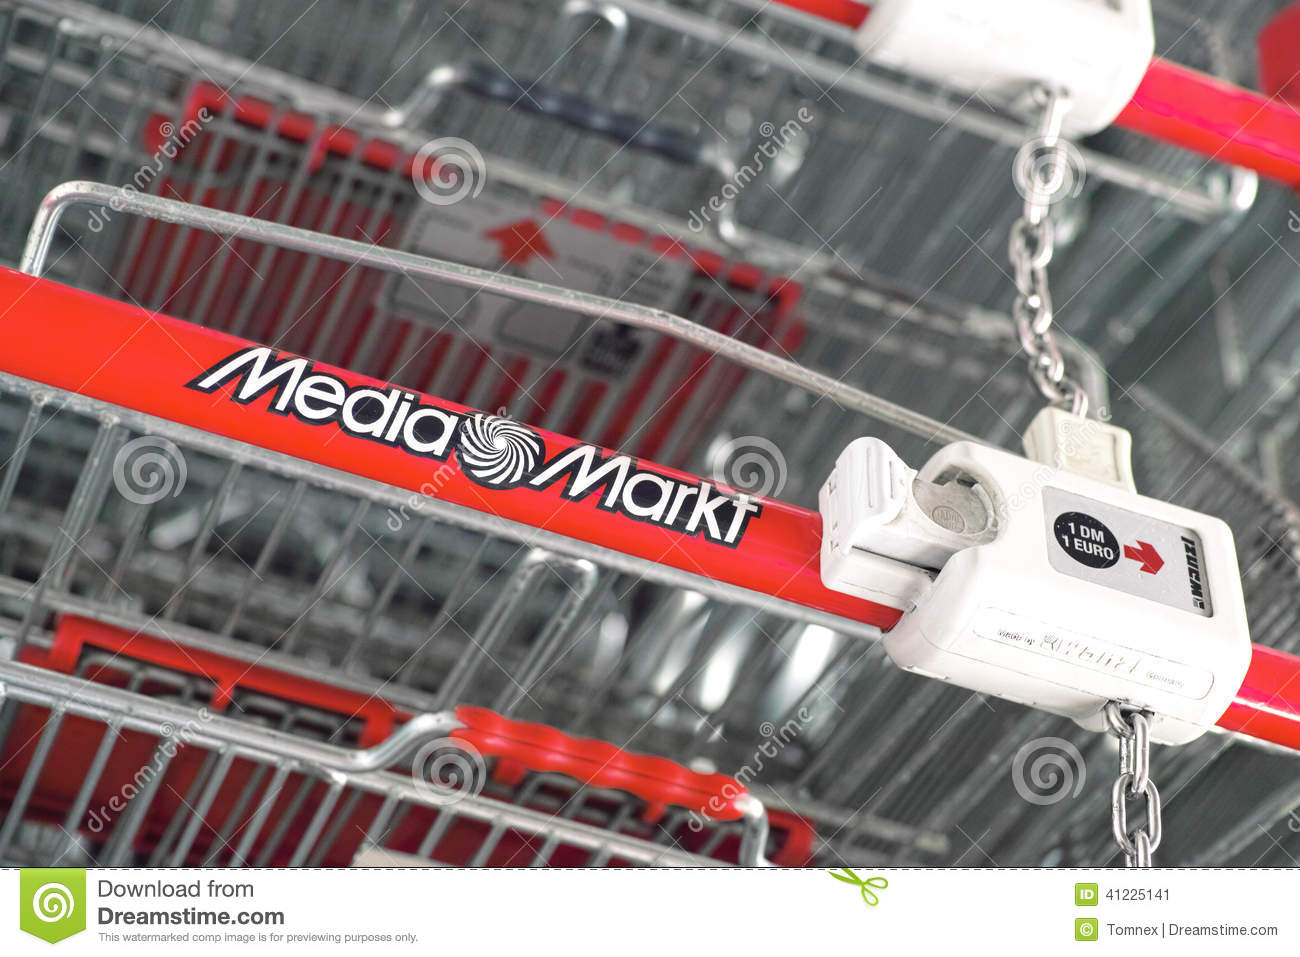 Copy Shop Koblenz Media Markt Shopping Carts Editorial Photo Image Of Germany